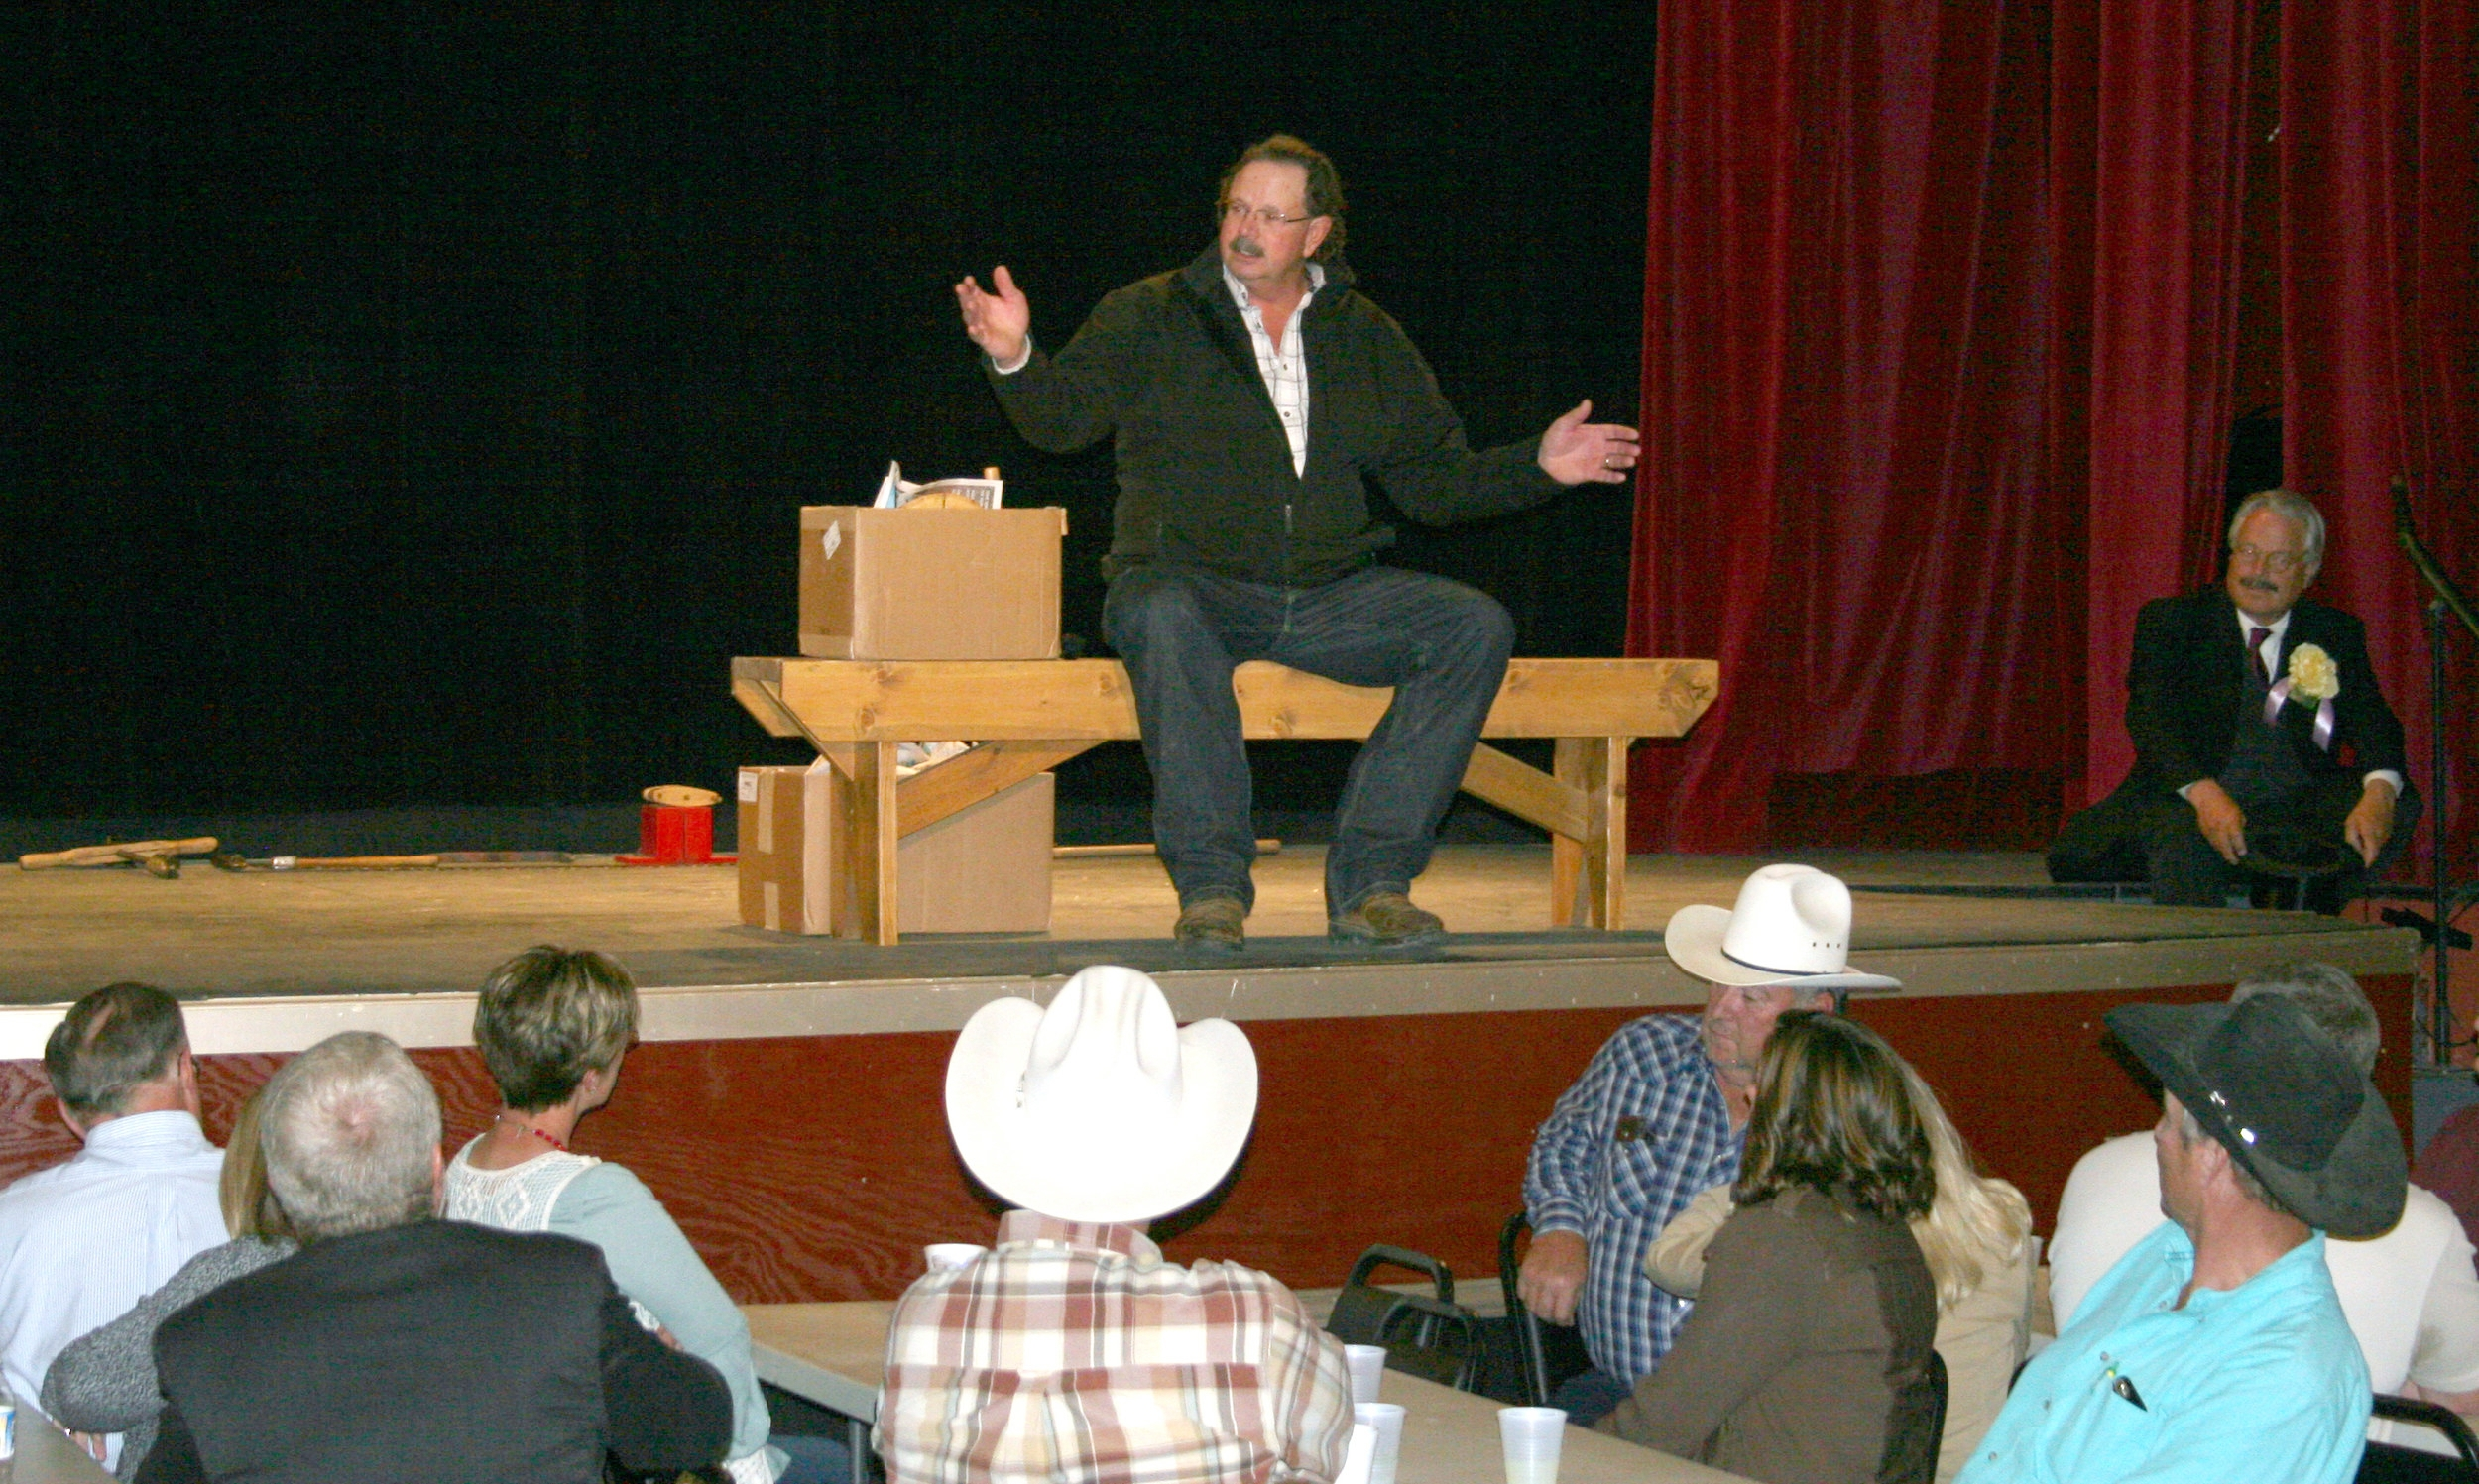 John Hanson shares anecdotes about harvesting cottonwood logs with the ranchers who donated them at the rancher appreciation event held in September 2017.